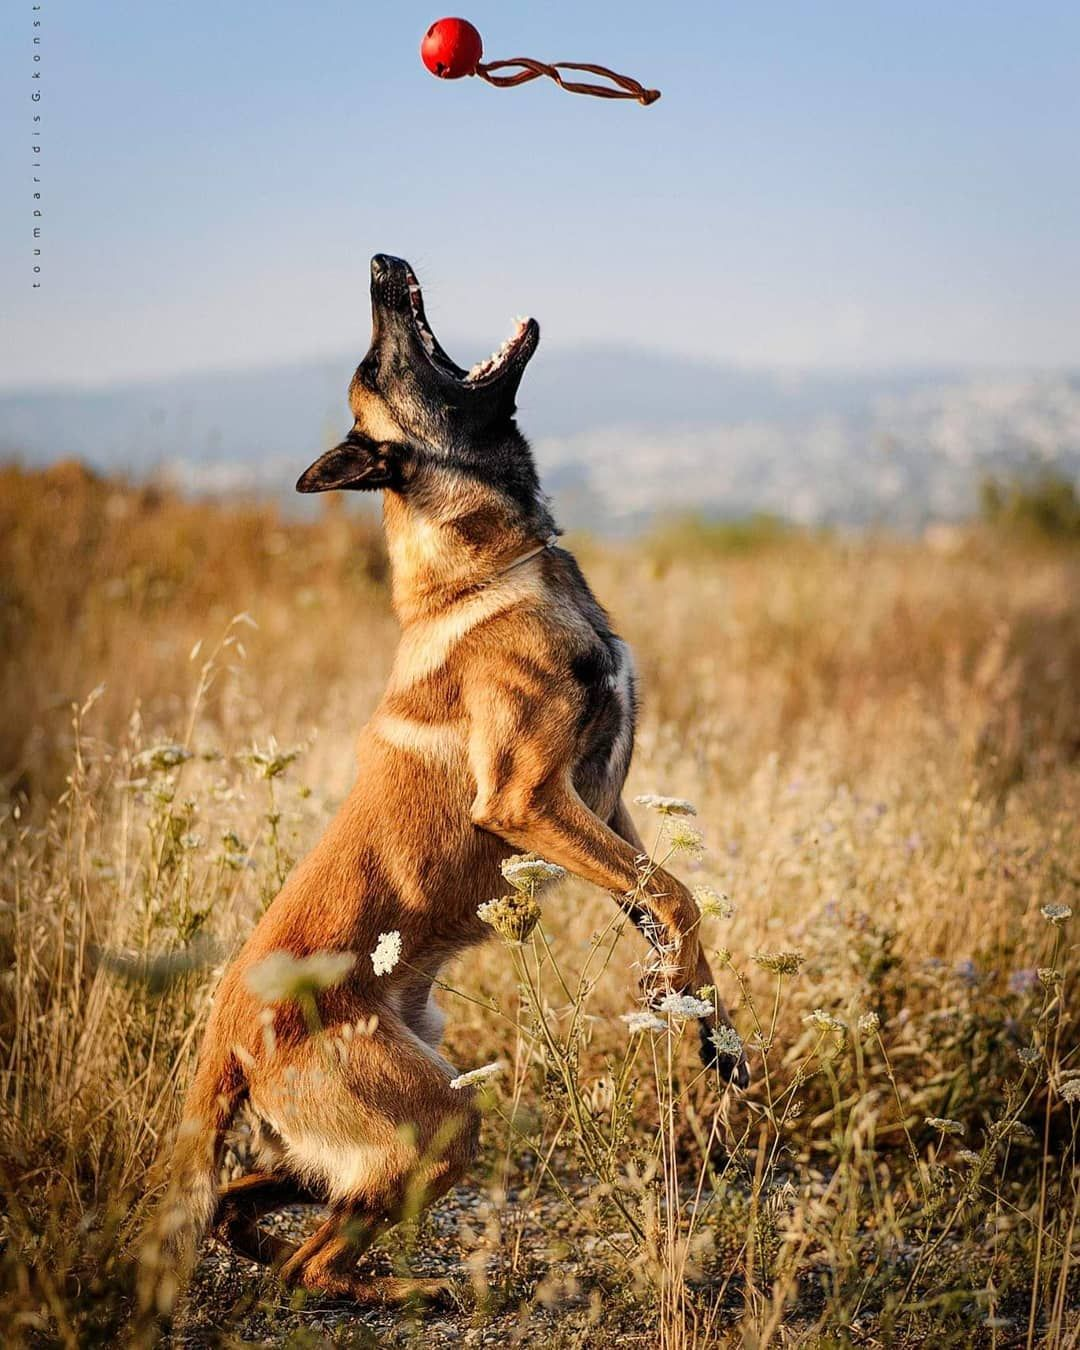 Earch And Rescue Dog Talos Malinois Dog Belgian Malinois Dog Search And Rescue Dogs